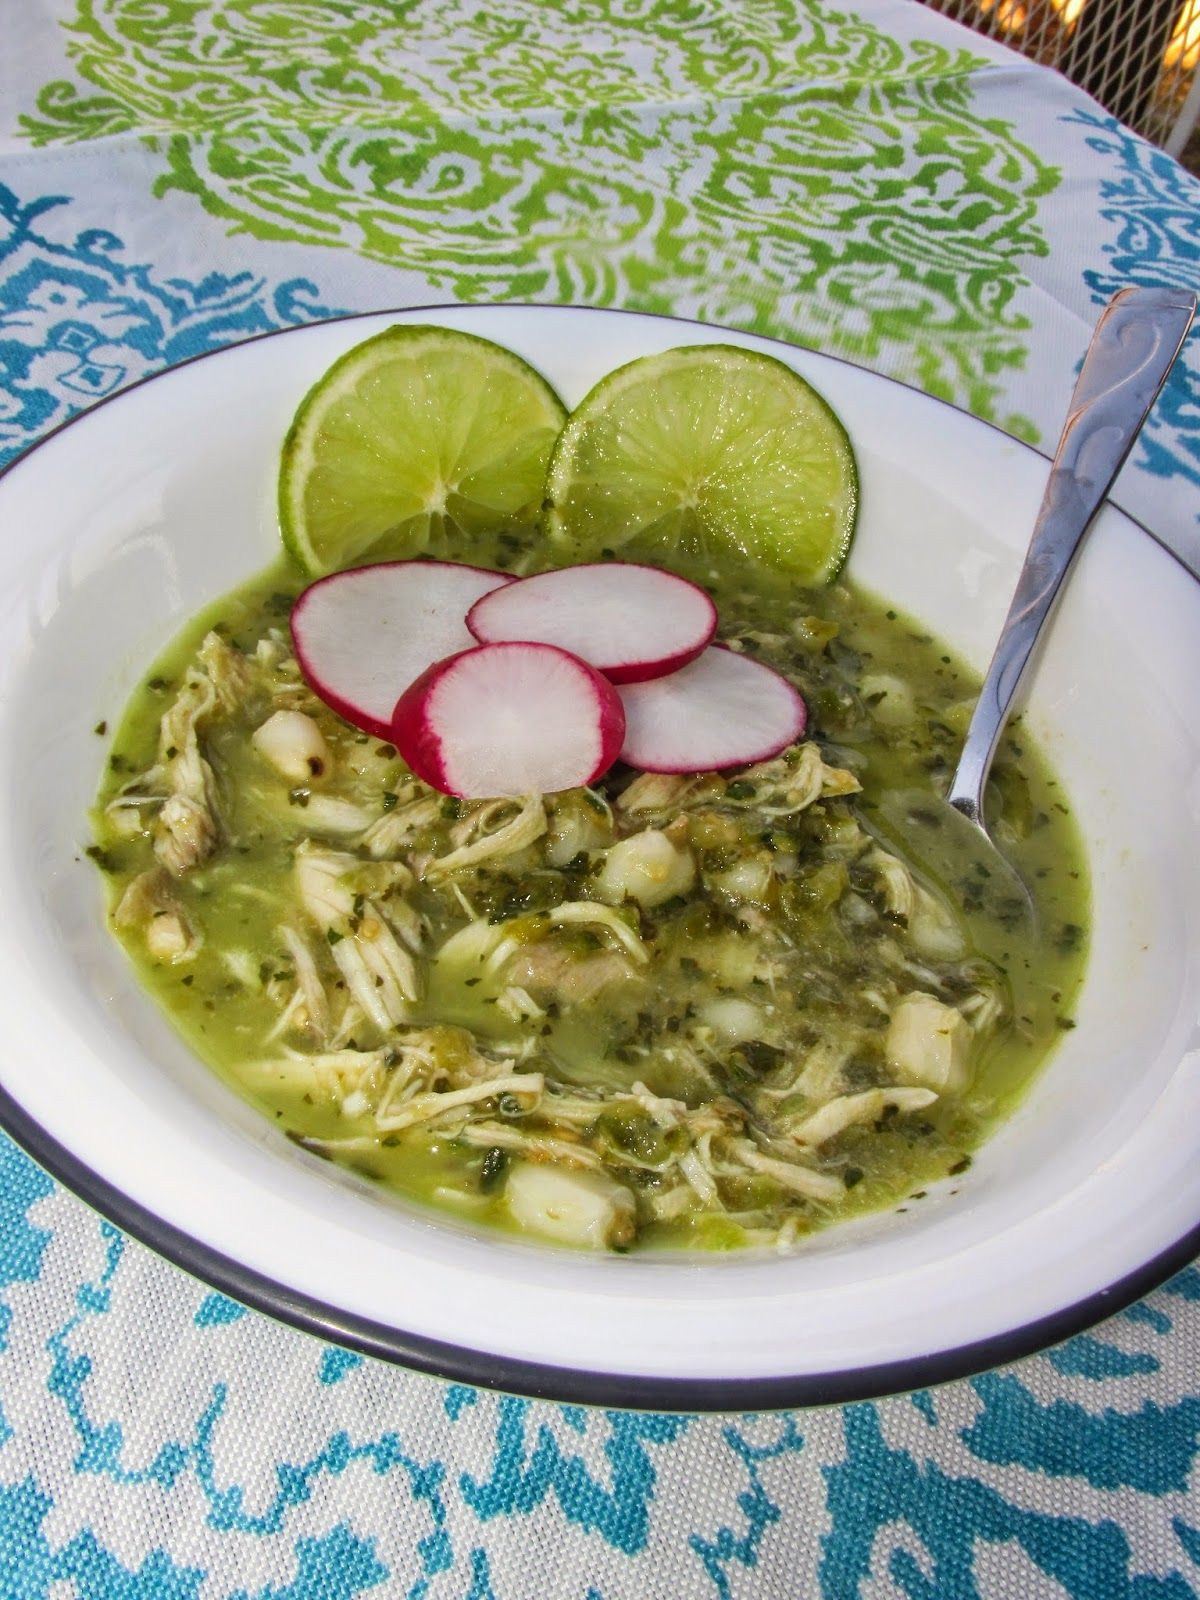 Arte Culinario Garifuna Guatemalan Chicken And Tomatillo Stew By Madame Cooks Recipe